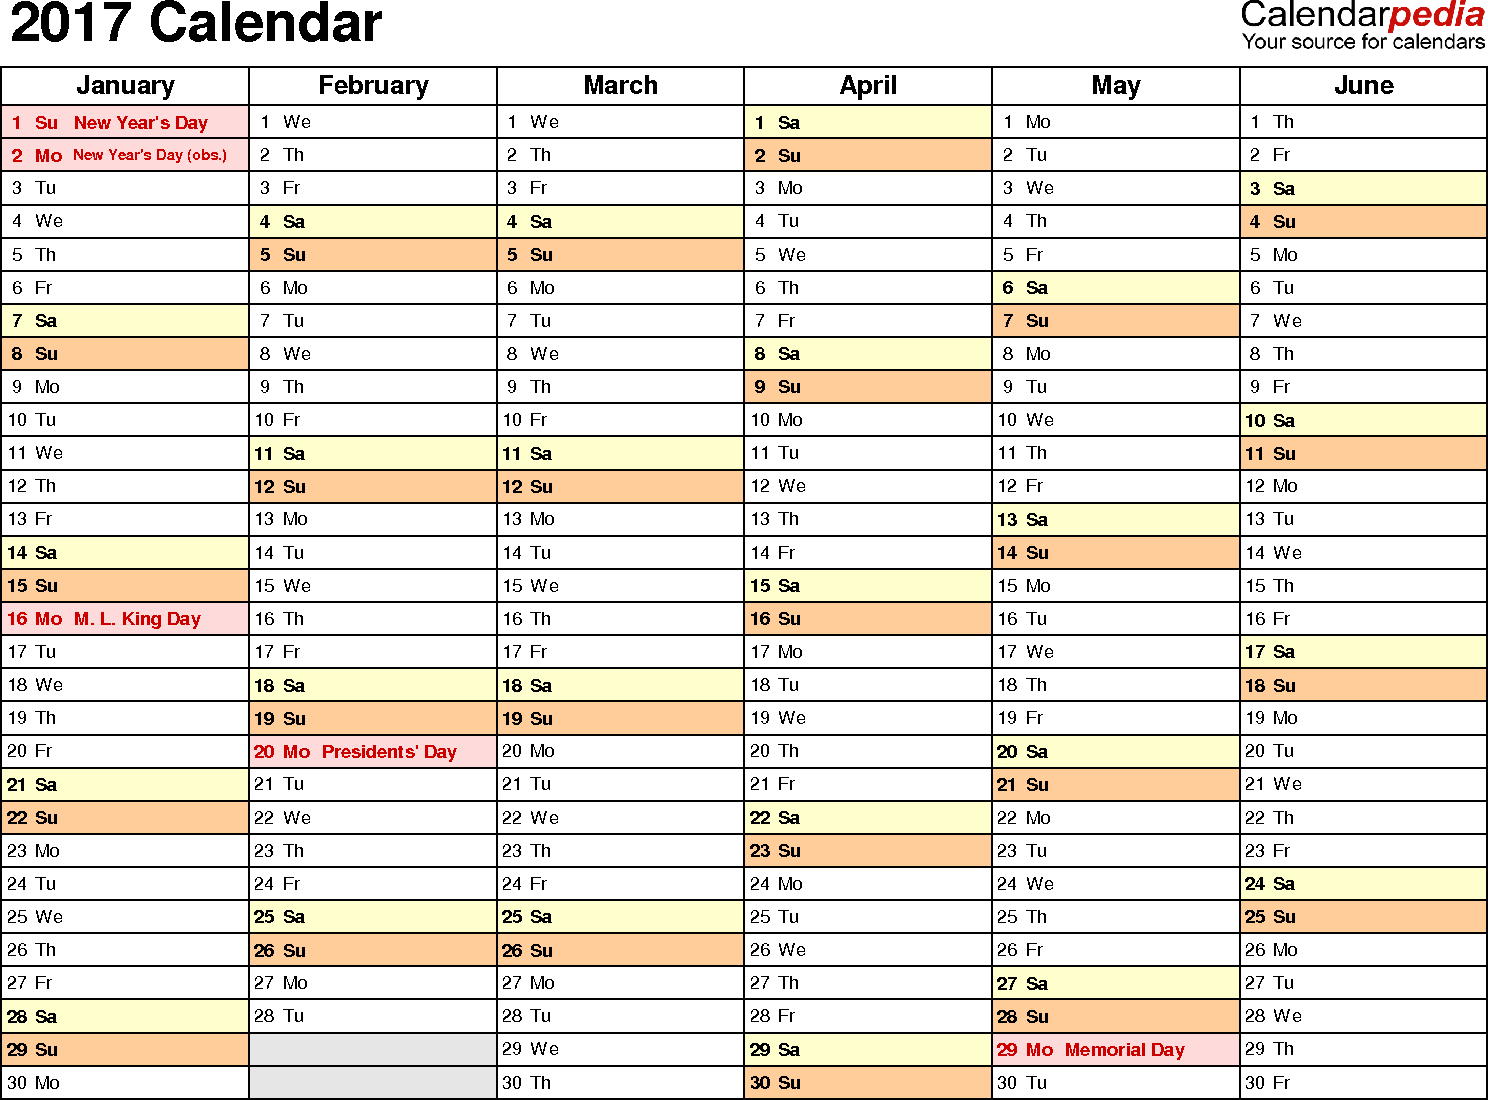 Ediblewildsus  Winsome  Calendar  Download  Free Printable Excel Templates Xls With Heavenly Template   Calendar For Excel Months Horizontally  Pages Landscape Orientation With Lovely Excel Roundup Formula Also Excel Macro If In Addition How To Pass An Excel Test And Syntax Excel As Well As If Logic In Excel Additionally Work Breakdown Structure Example Excel From Calendarpediacom With Ediblewildsus  Heavenly  Calendar  Download  Free Printable Excel Templates Xls With Lovely Template   Calendar For Excel Months Horizontally  Pages Landscape Orientation And Winsome Excel Roundup Formula Also Excel Macro If In Addition How To Pass An Excel Test From Calendarpediacom